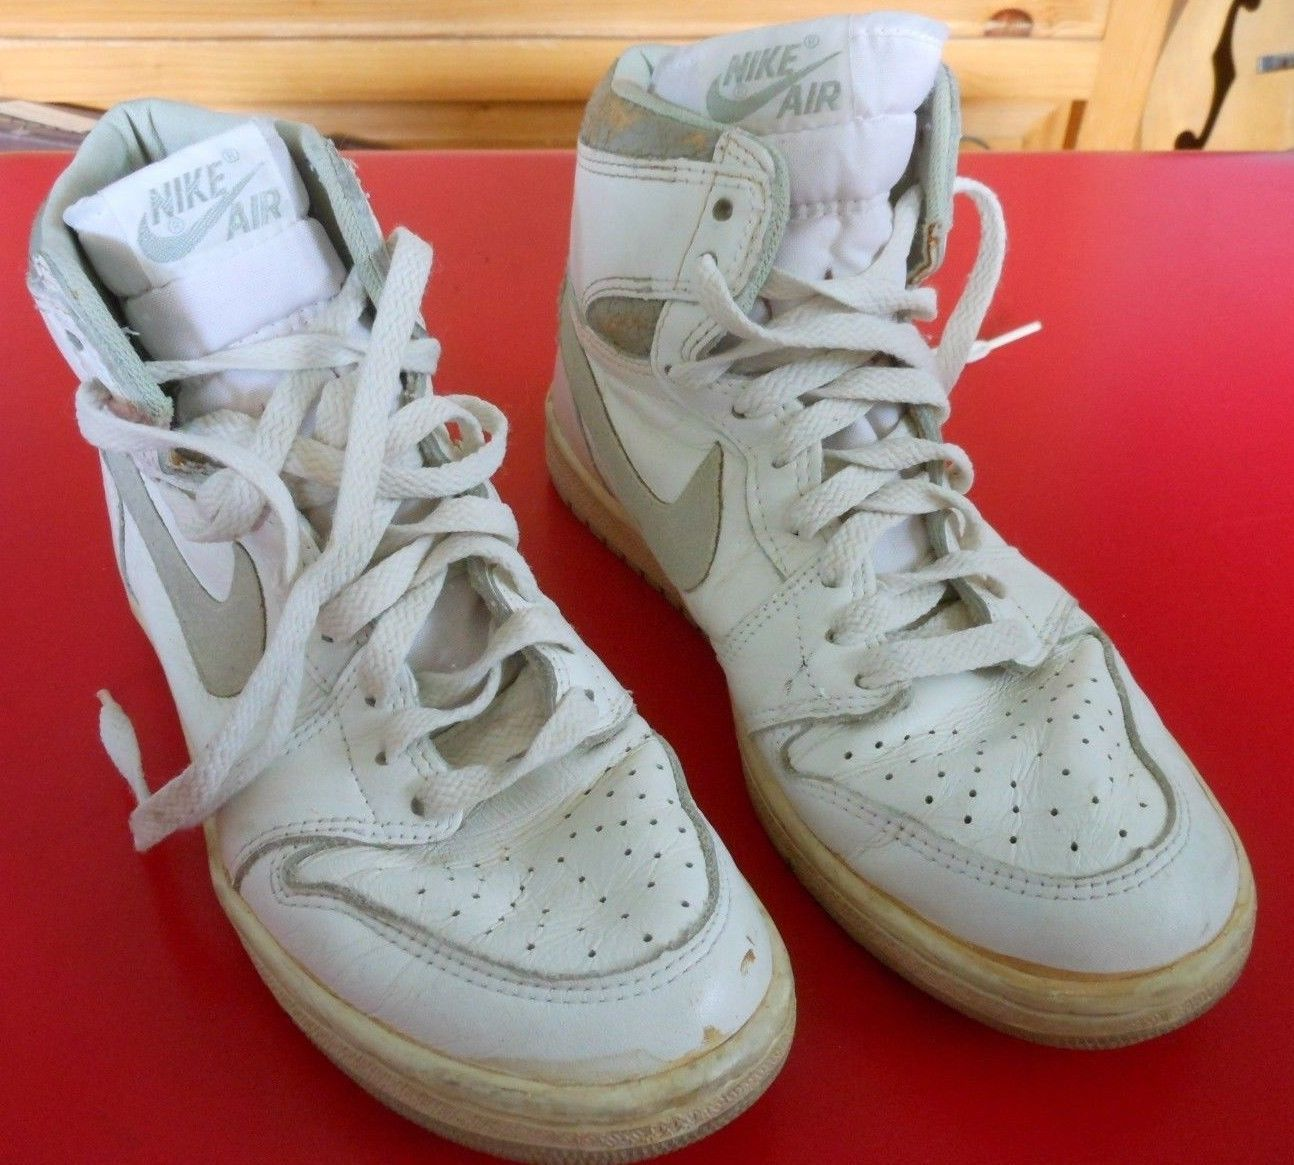 587502124d081e Vintage 1985 Nike Air Jordan 1 Original OG White   Neutral Grey Size 6.5  Shoes